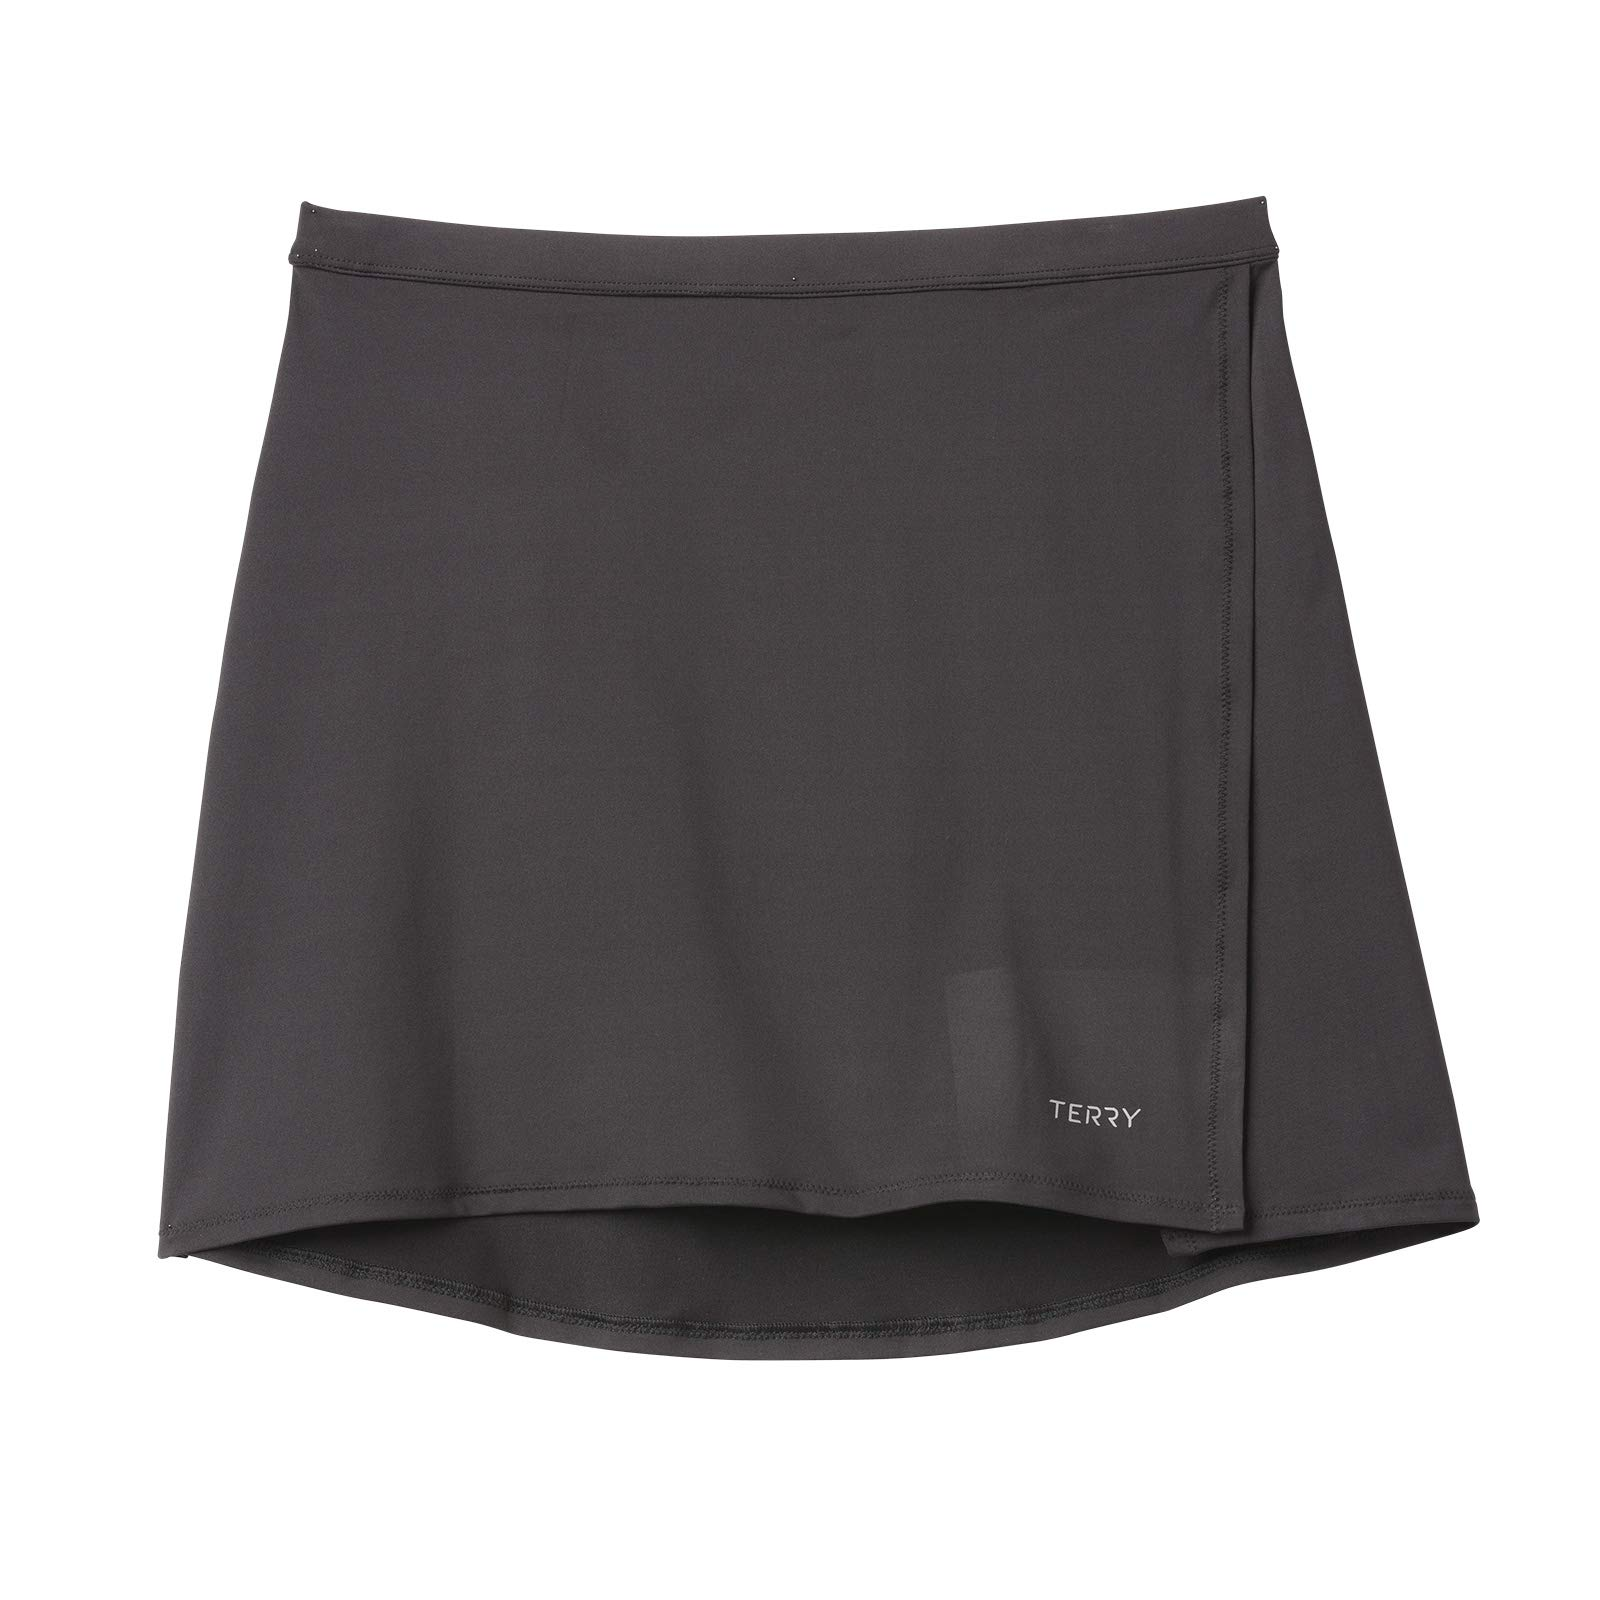 Terry Mixie Cycling Skirt - Women's Active Bike Cover-up for Bicycle Cycling Performance - Black - Small by Terry